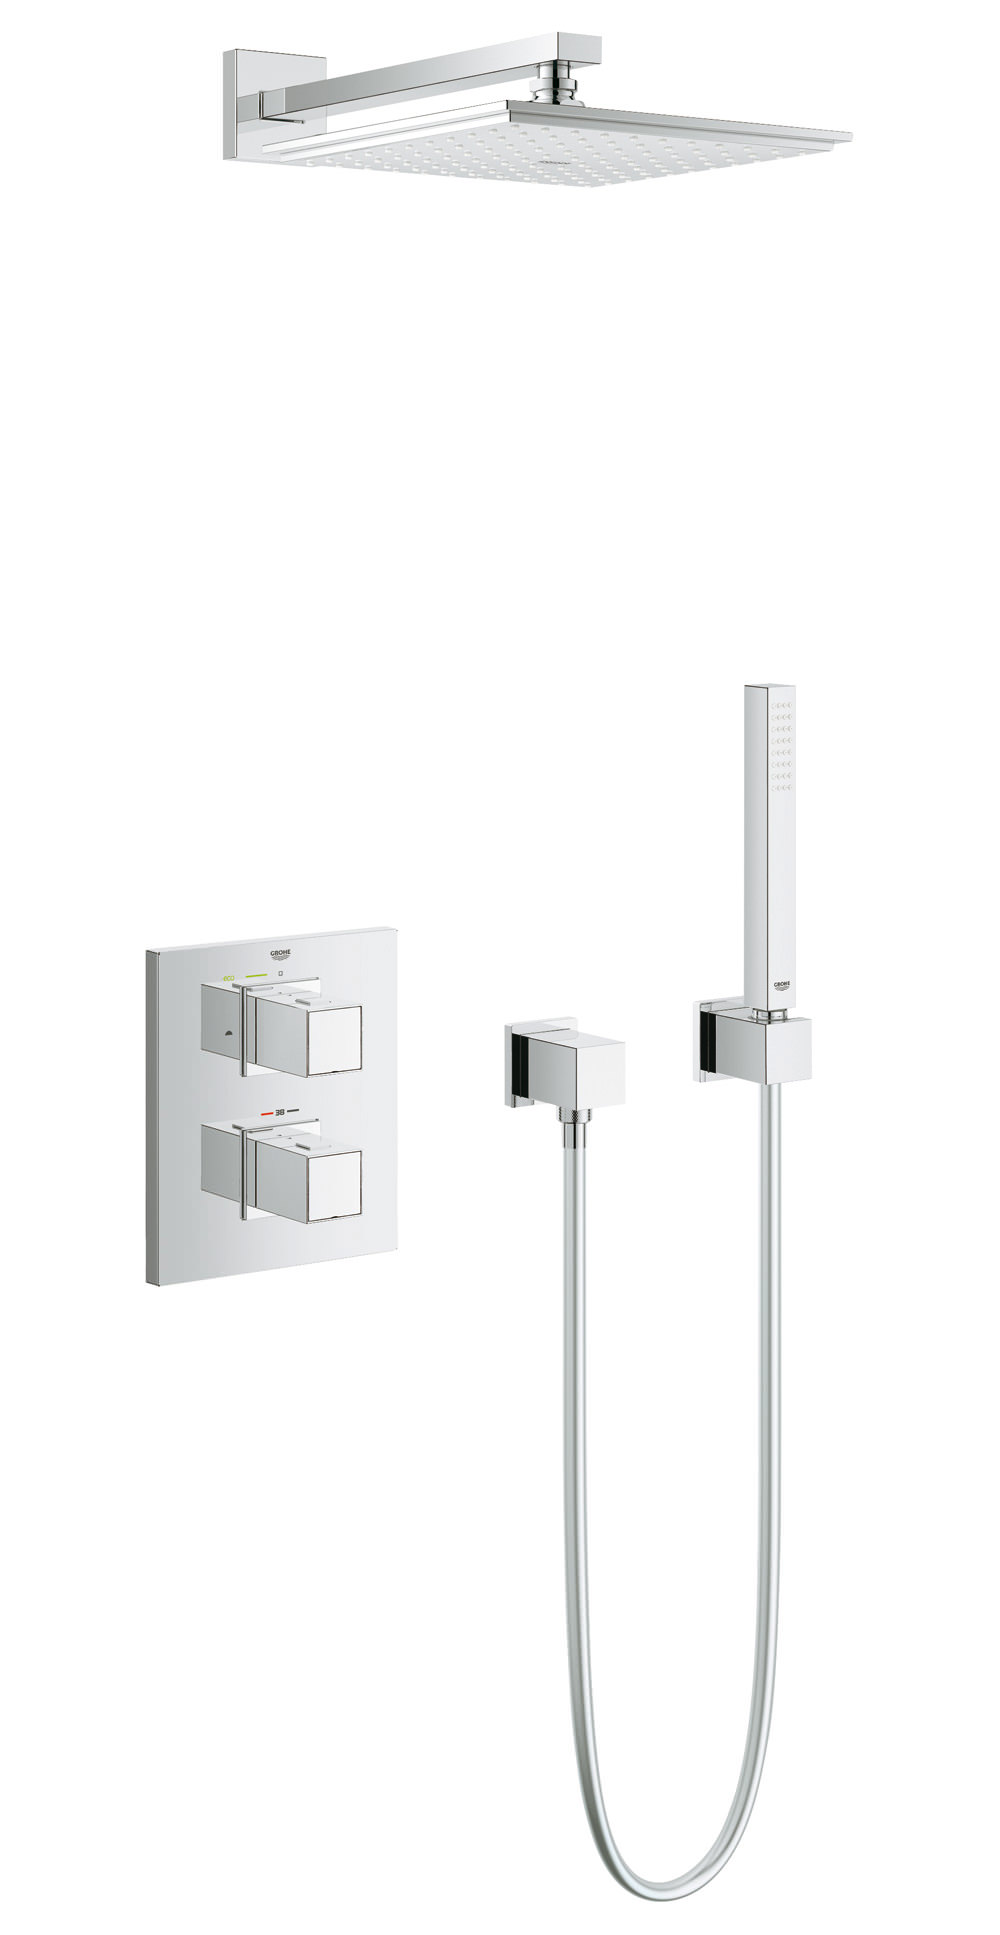 arms dp com eurocube shower only and grohe trim bars amazon single kit slide handle